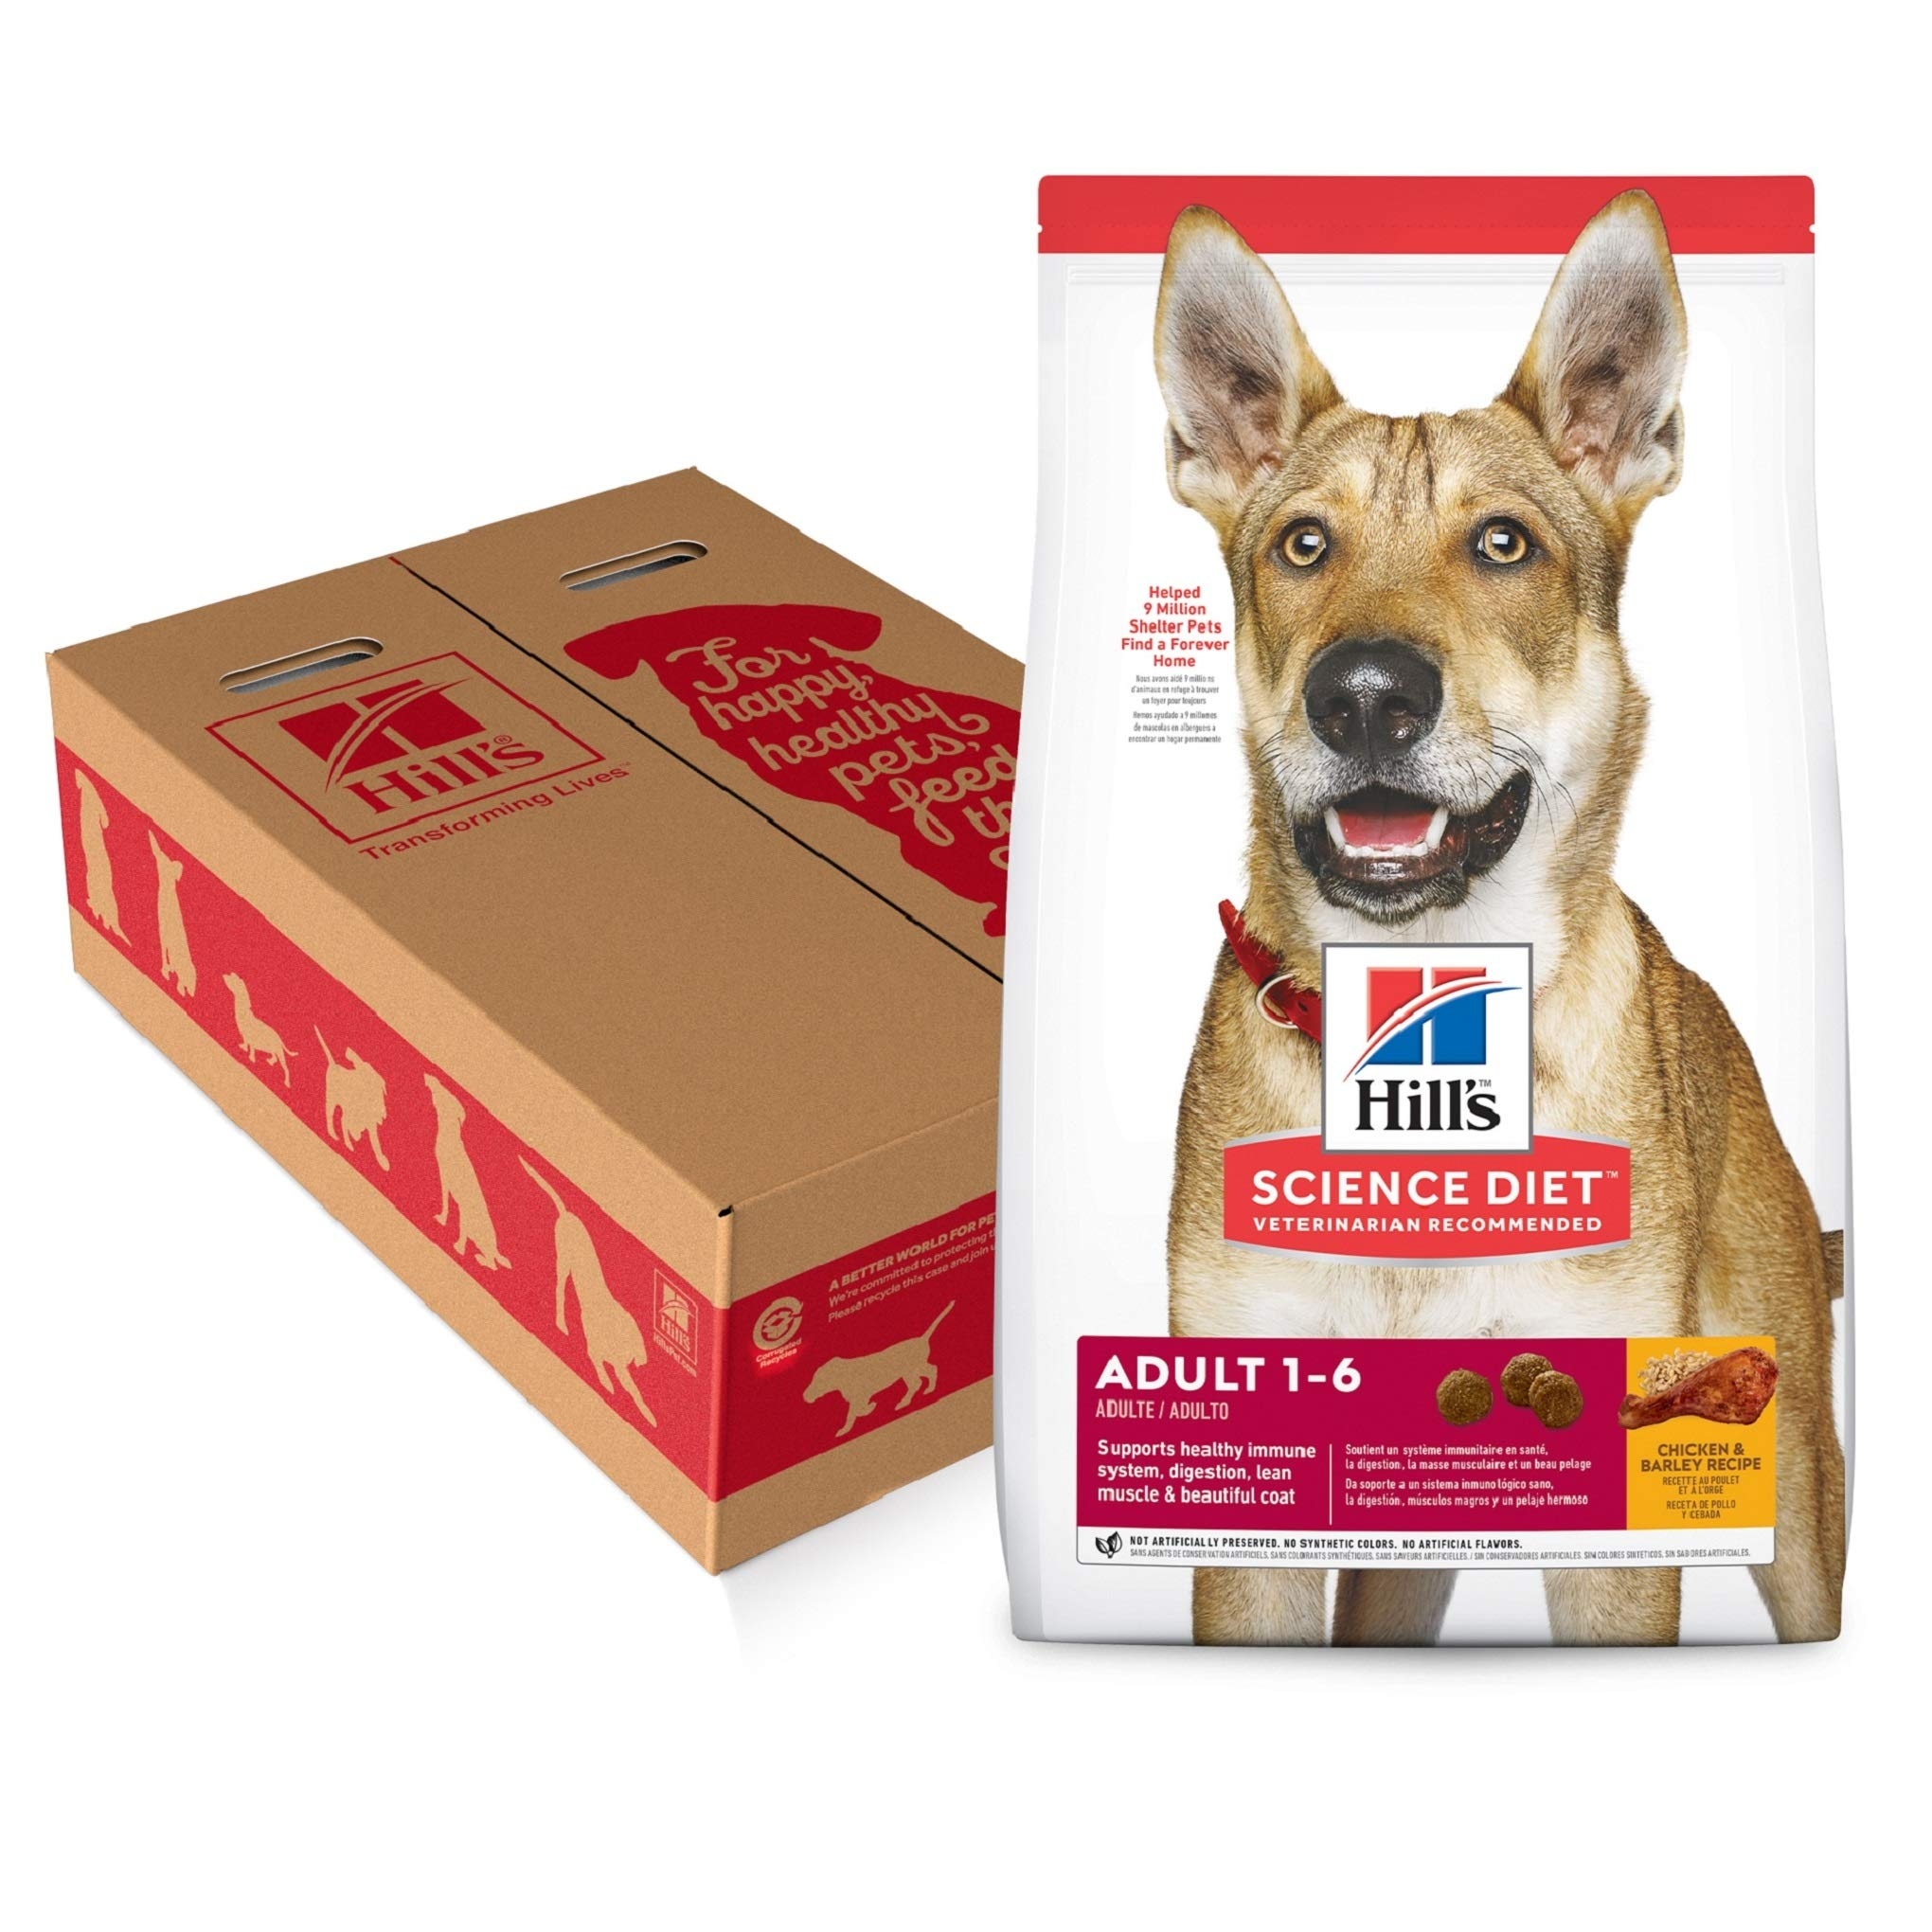 Hill's Science Diet Dry Dog Food, Adult, Chicken & Barley Recipe, 35 lb Bag by Hill's Science Diet